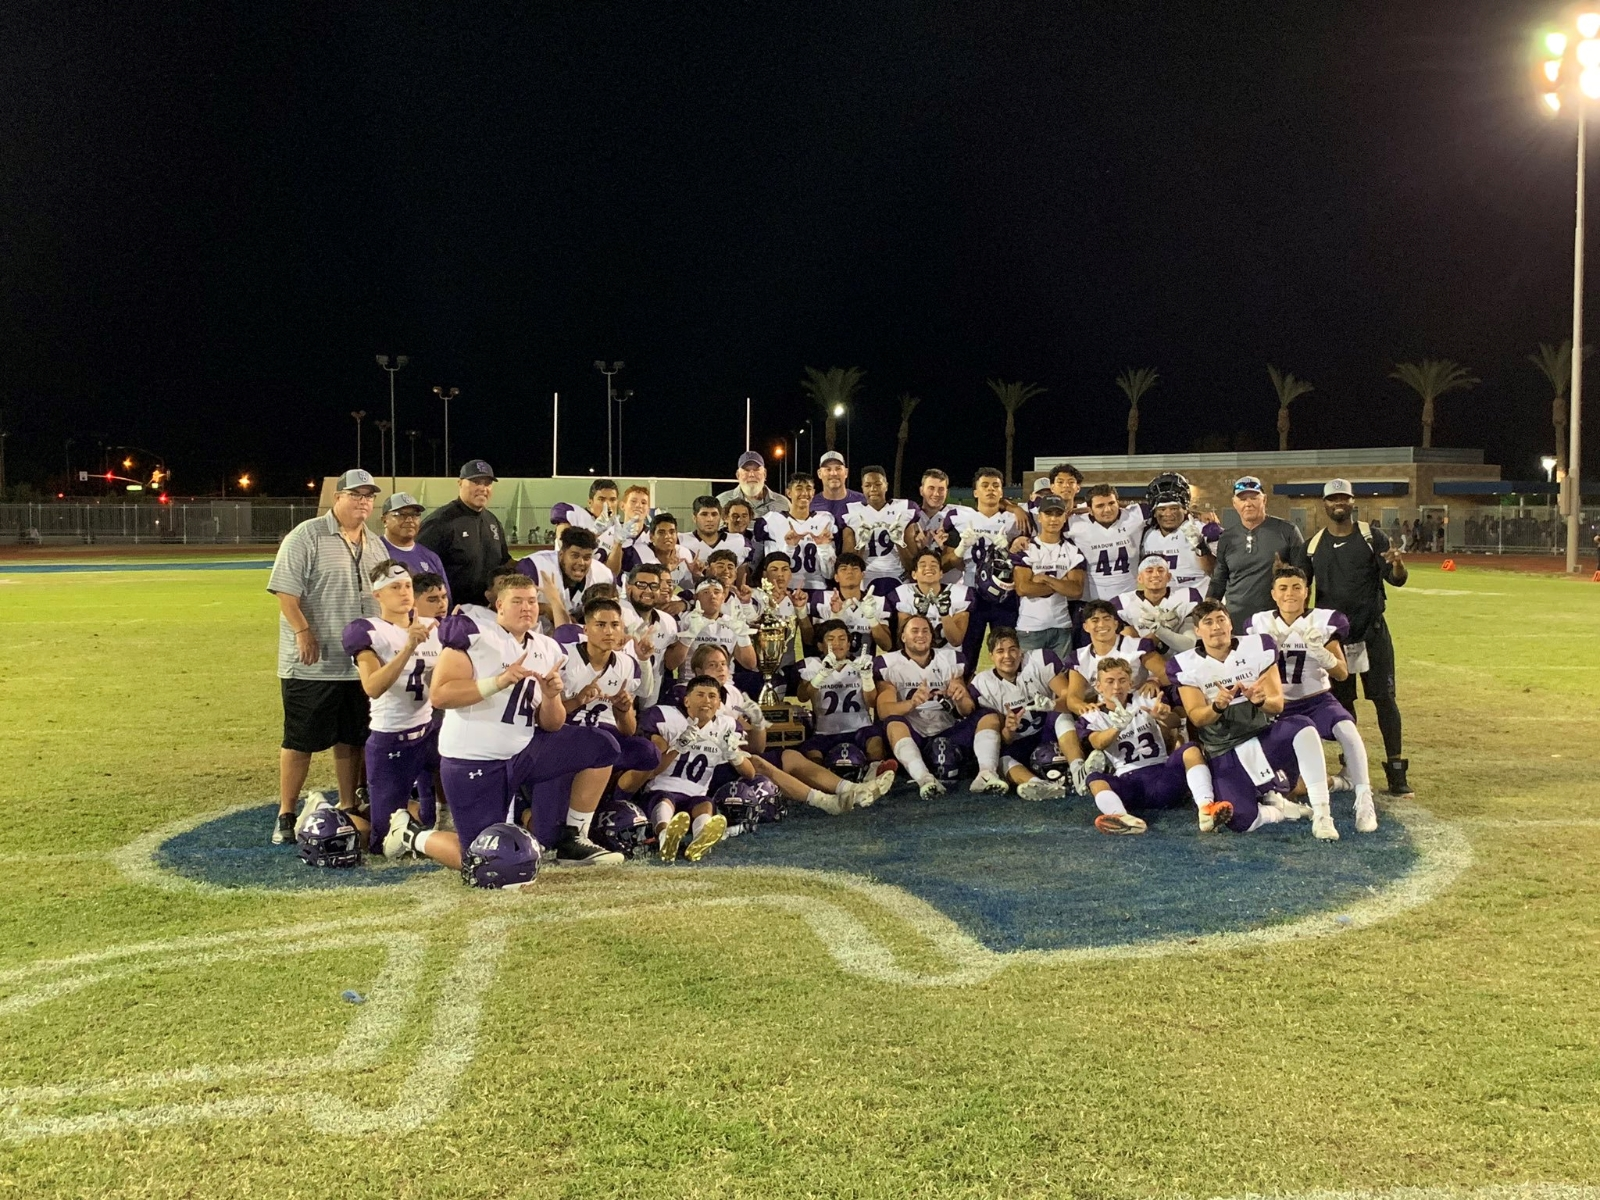 The Knights were triumphant against the Rajahs, beating them 49-0 and Winning the Mayor's Cup yet again!